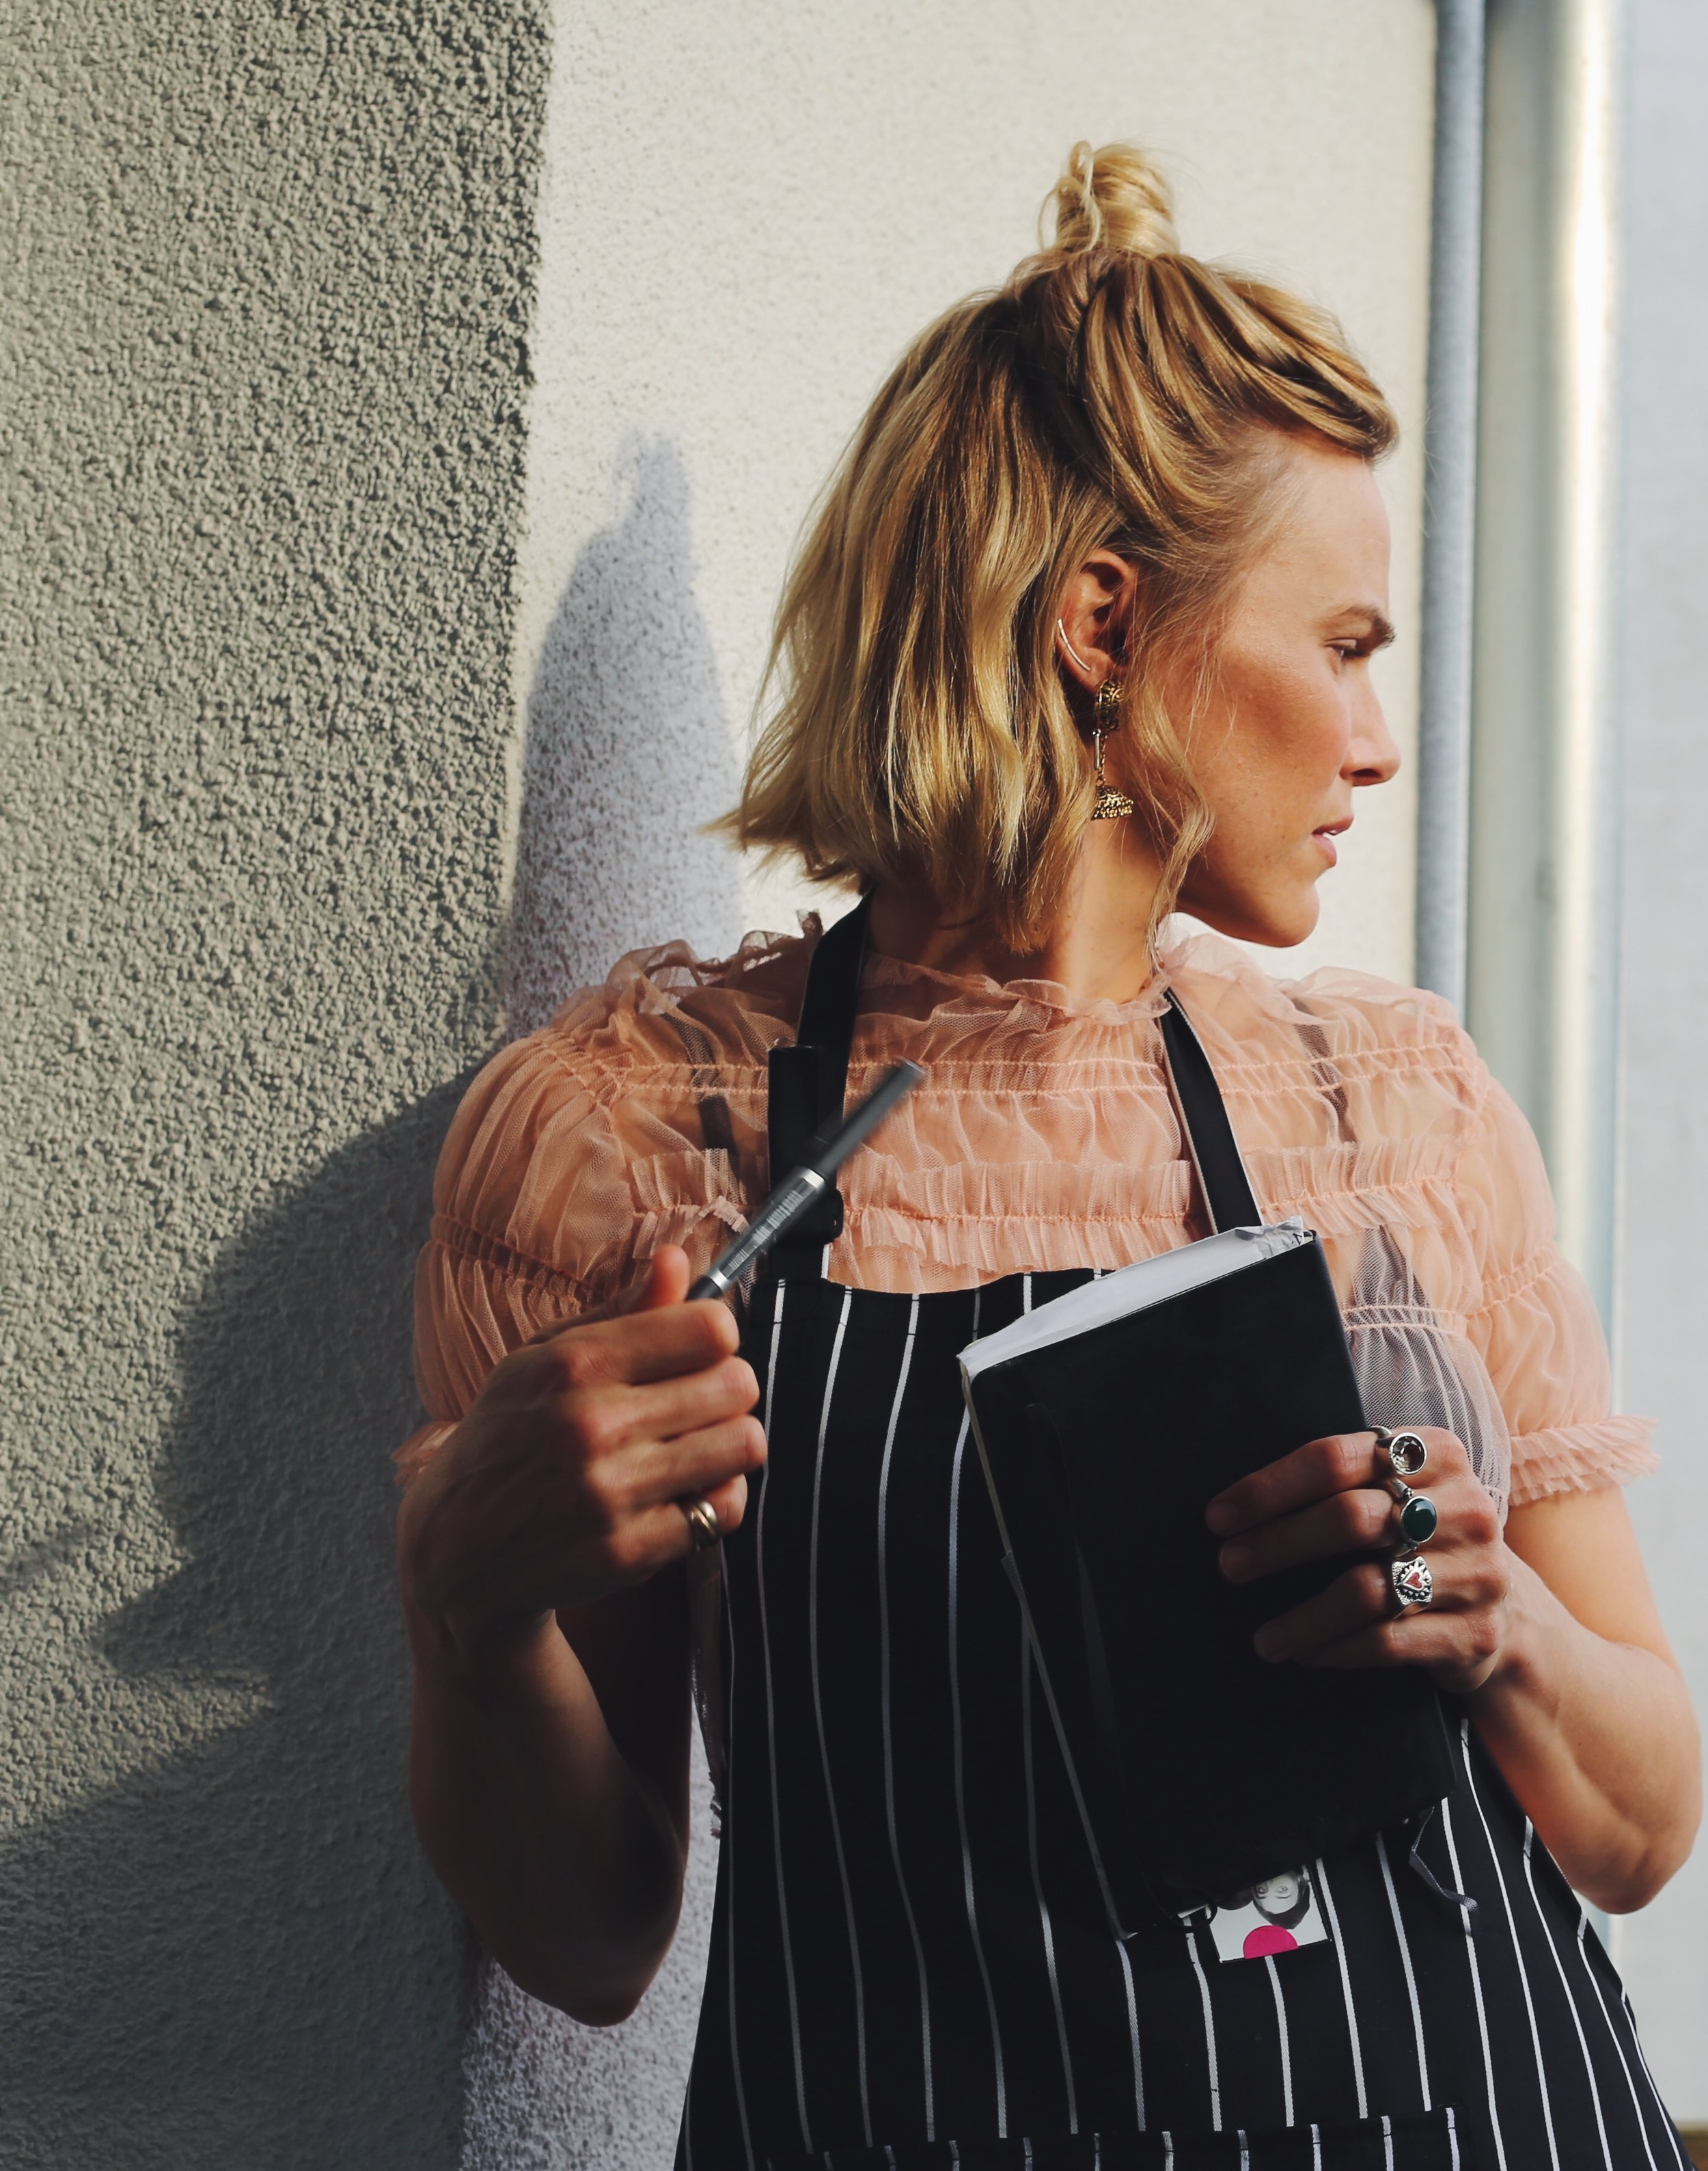 lc-vh is a fuss-free journal on food healing, a conscious lifestyle, being a mama and living connected & well. -